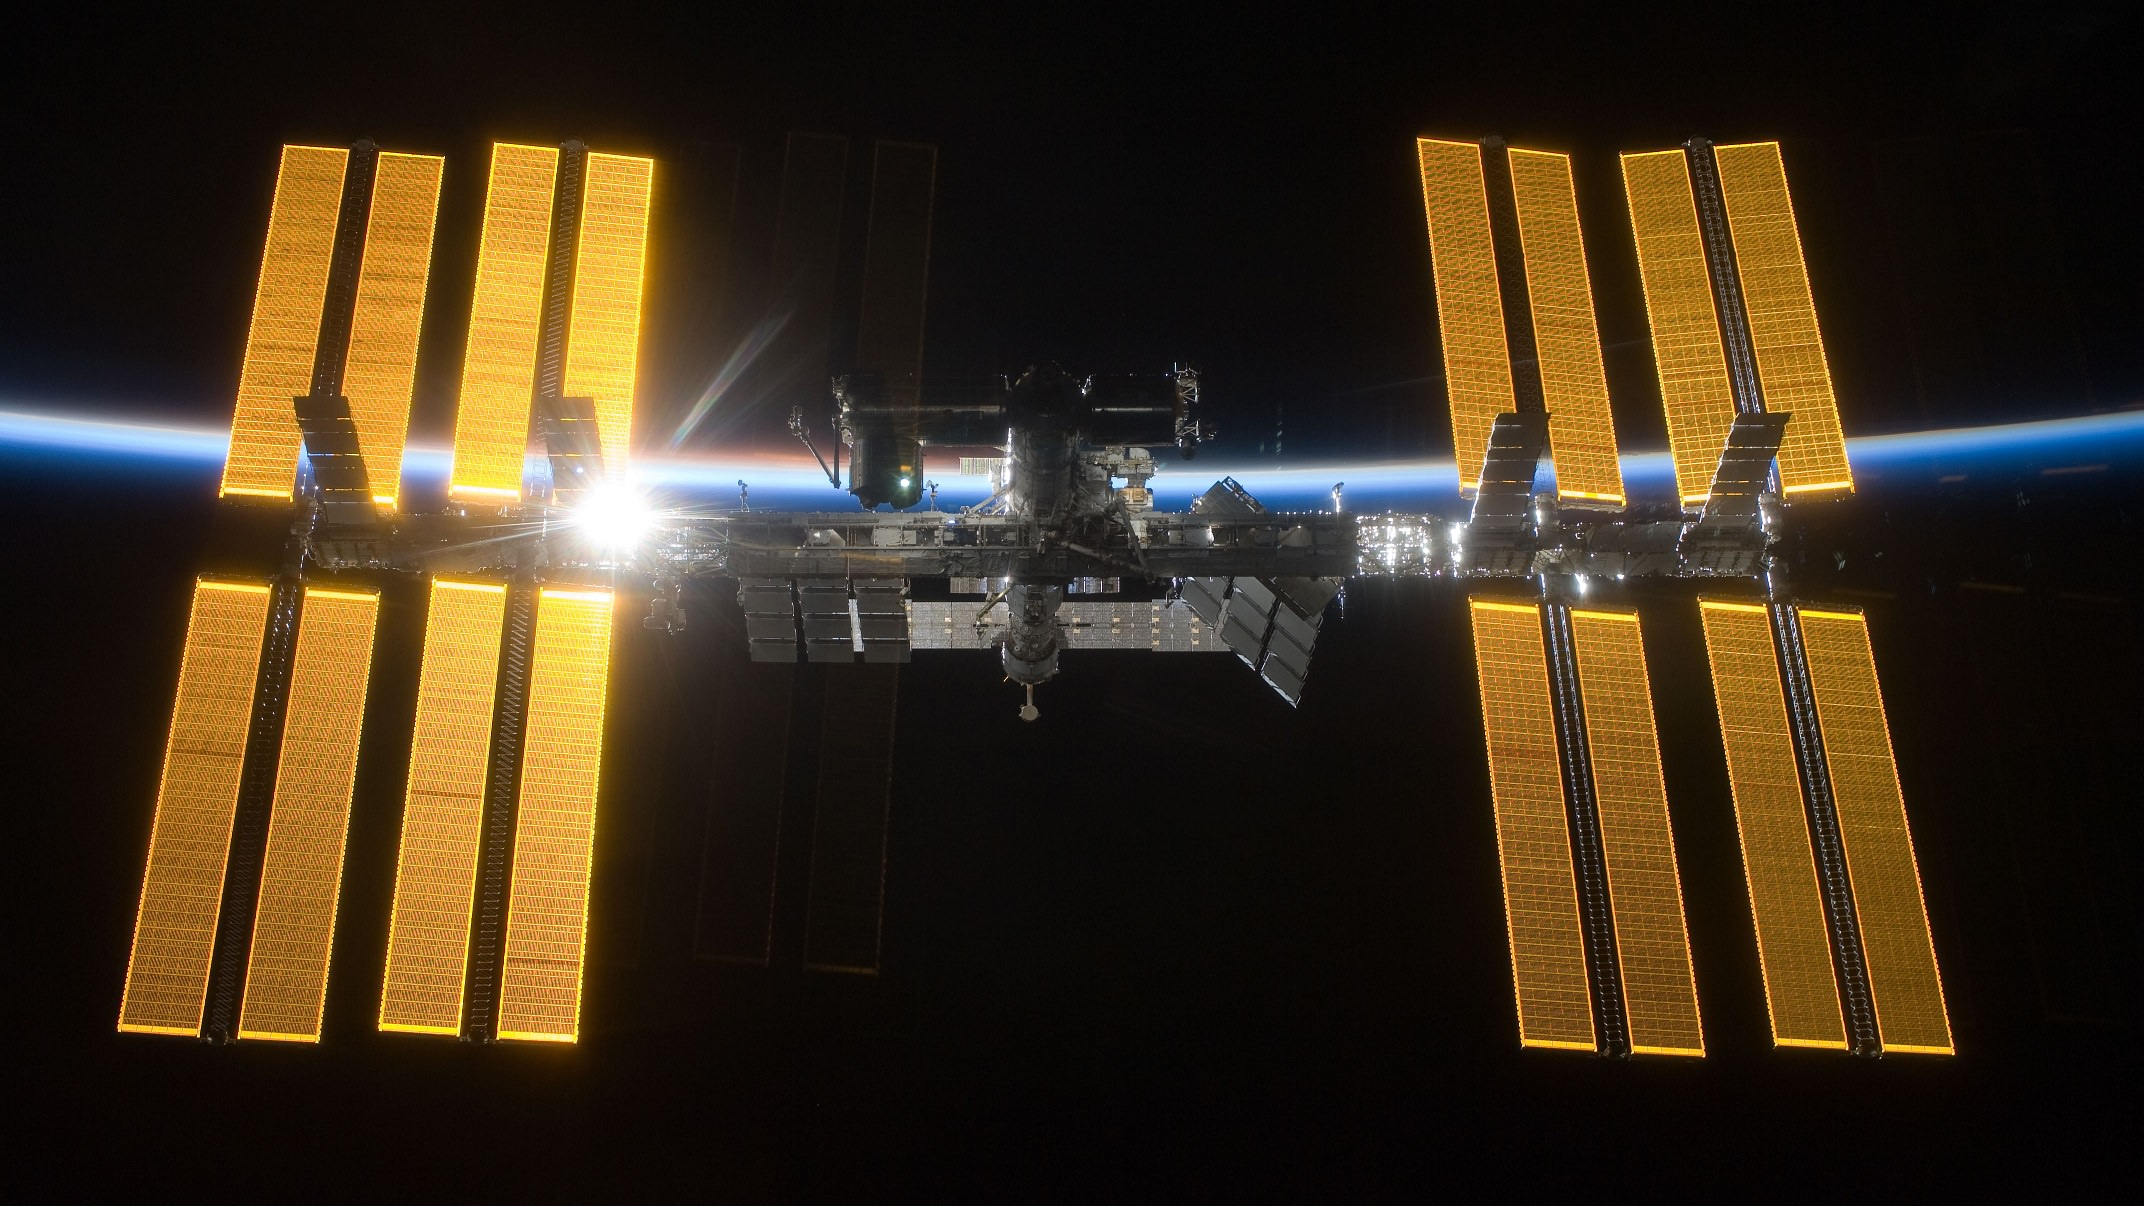 The International Space Station - Image Credit: NASA/ESA